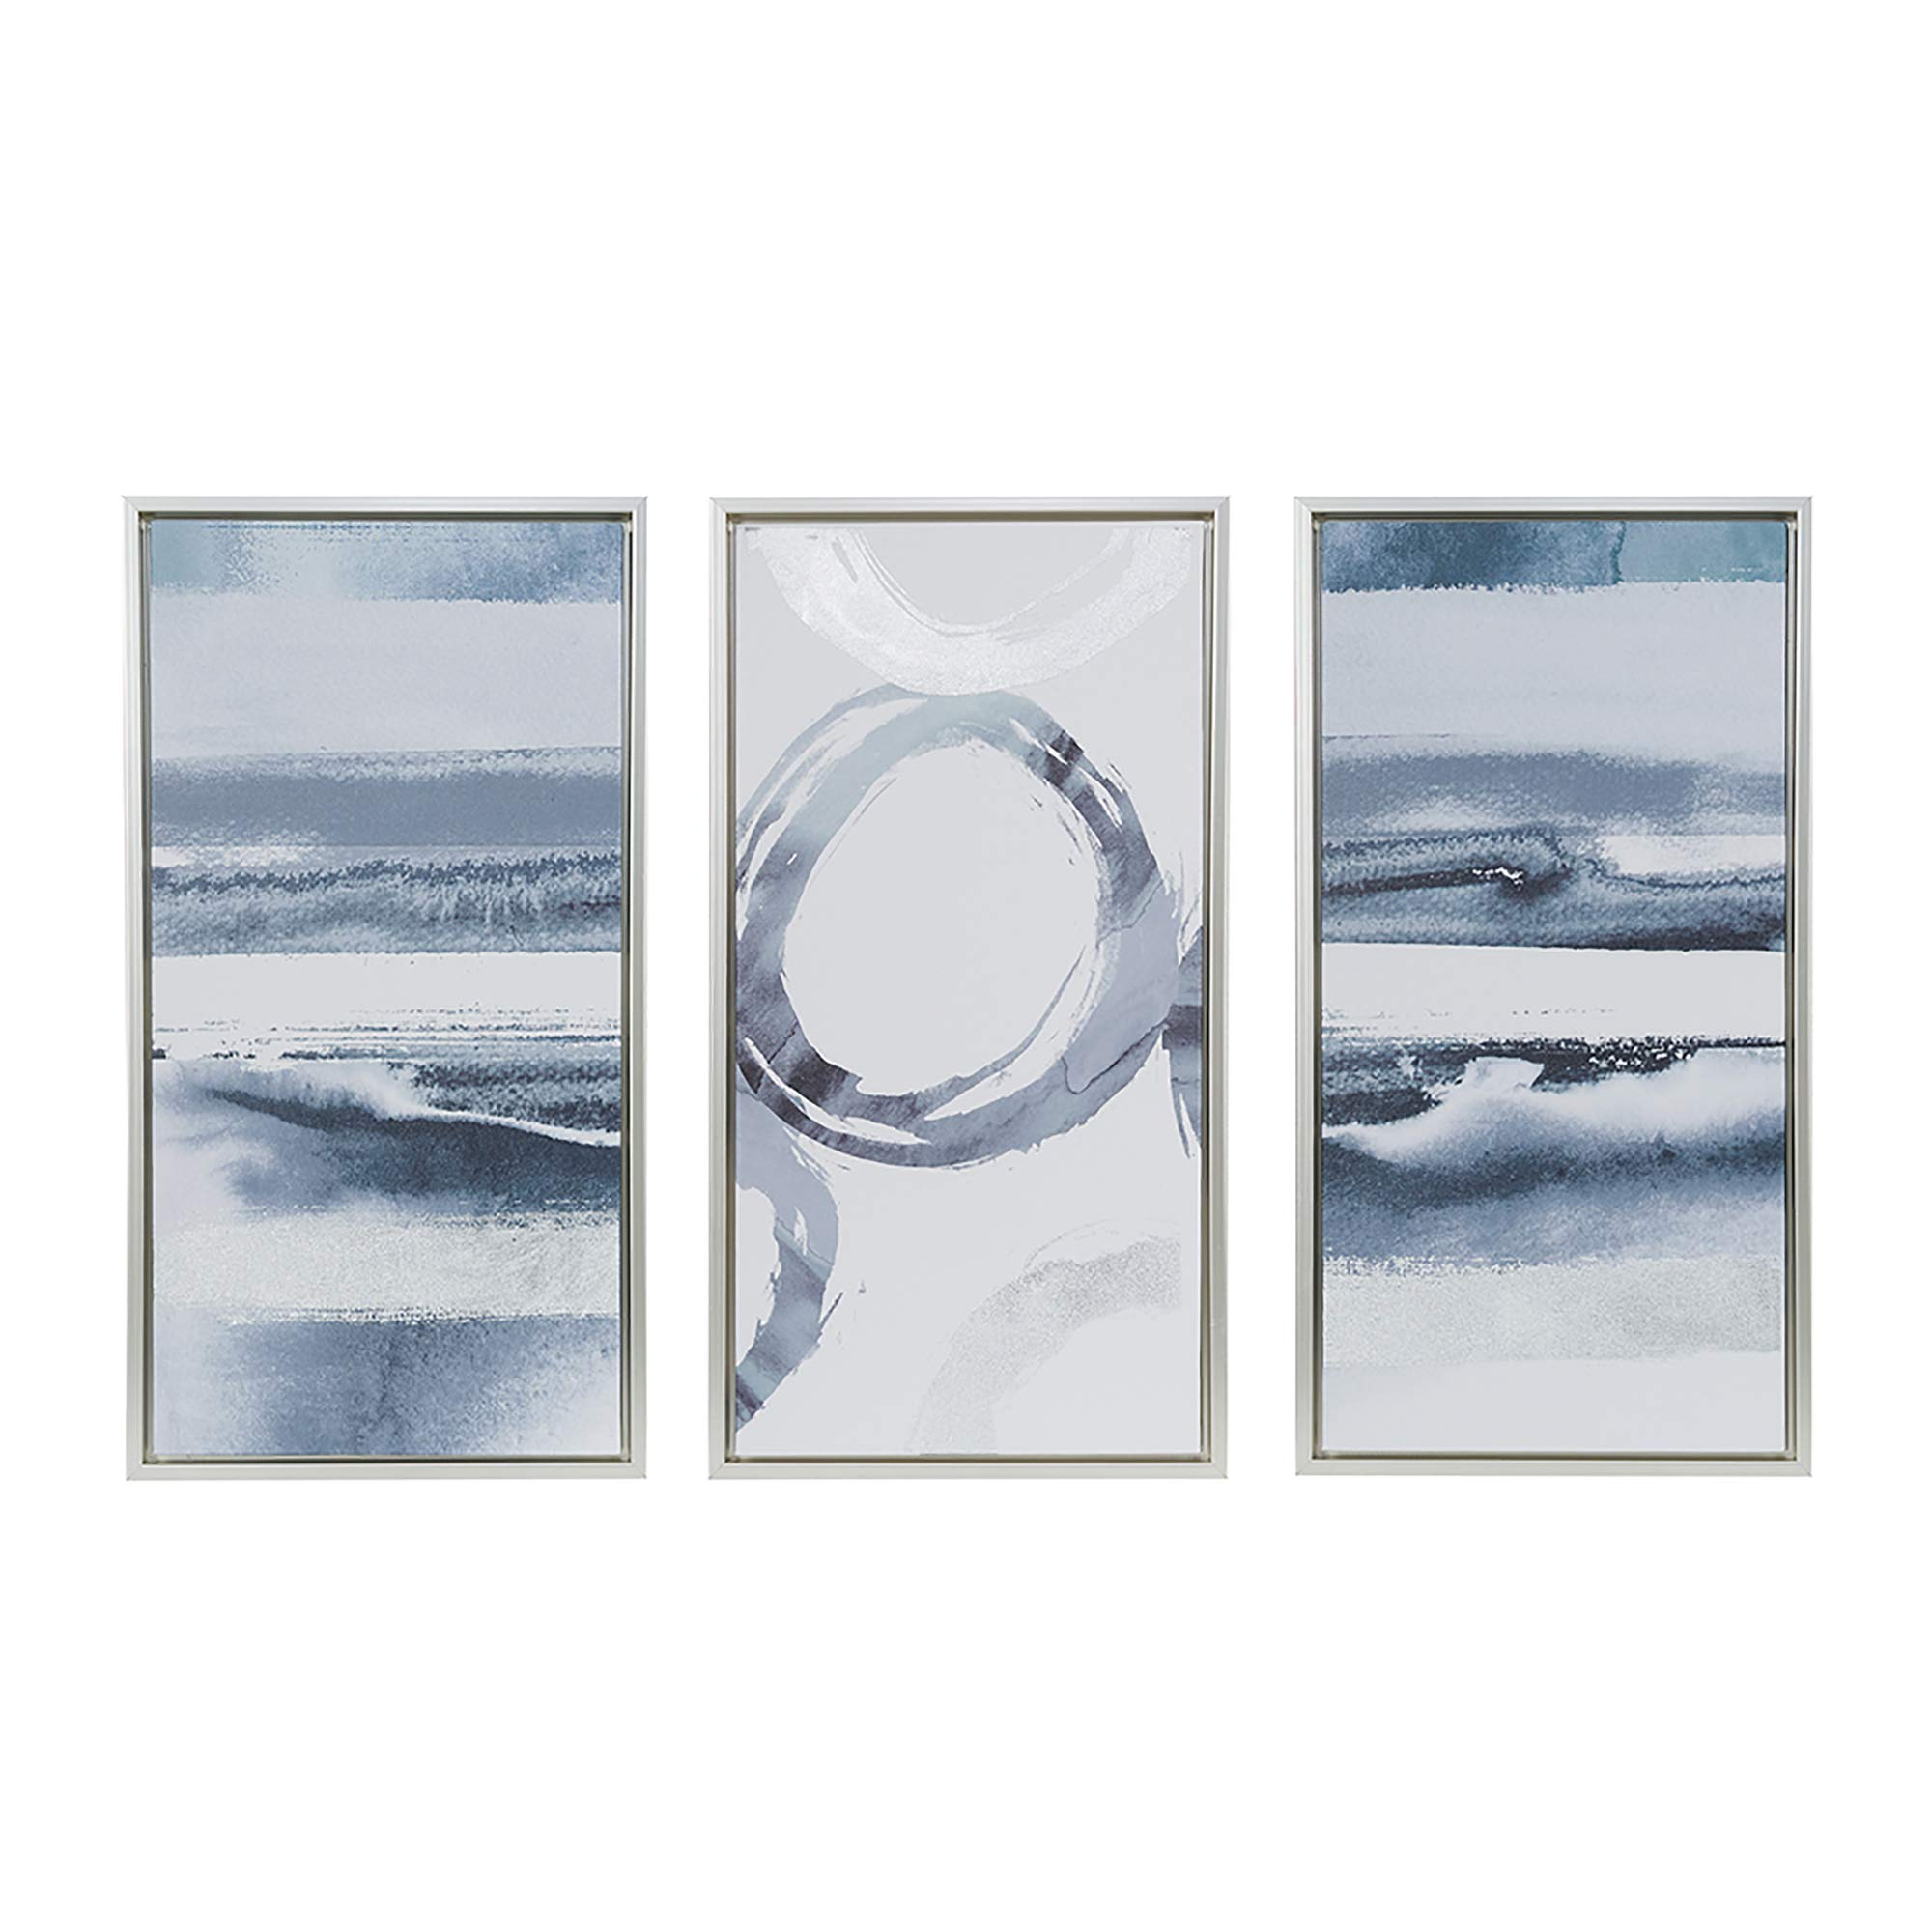 Grey Surrounding Grey White Framed Canvas Wall Art 16.6X31.6, Abstract Modern/Contemporary Framed Wall Décor by Madison Park